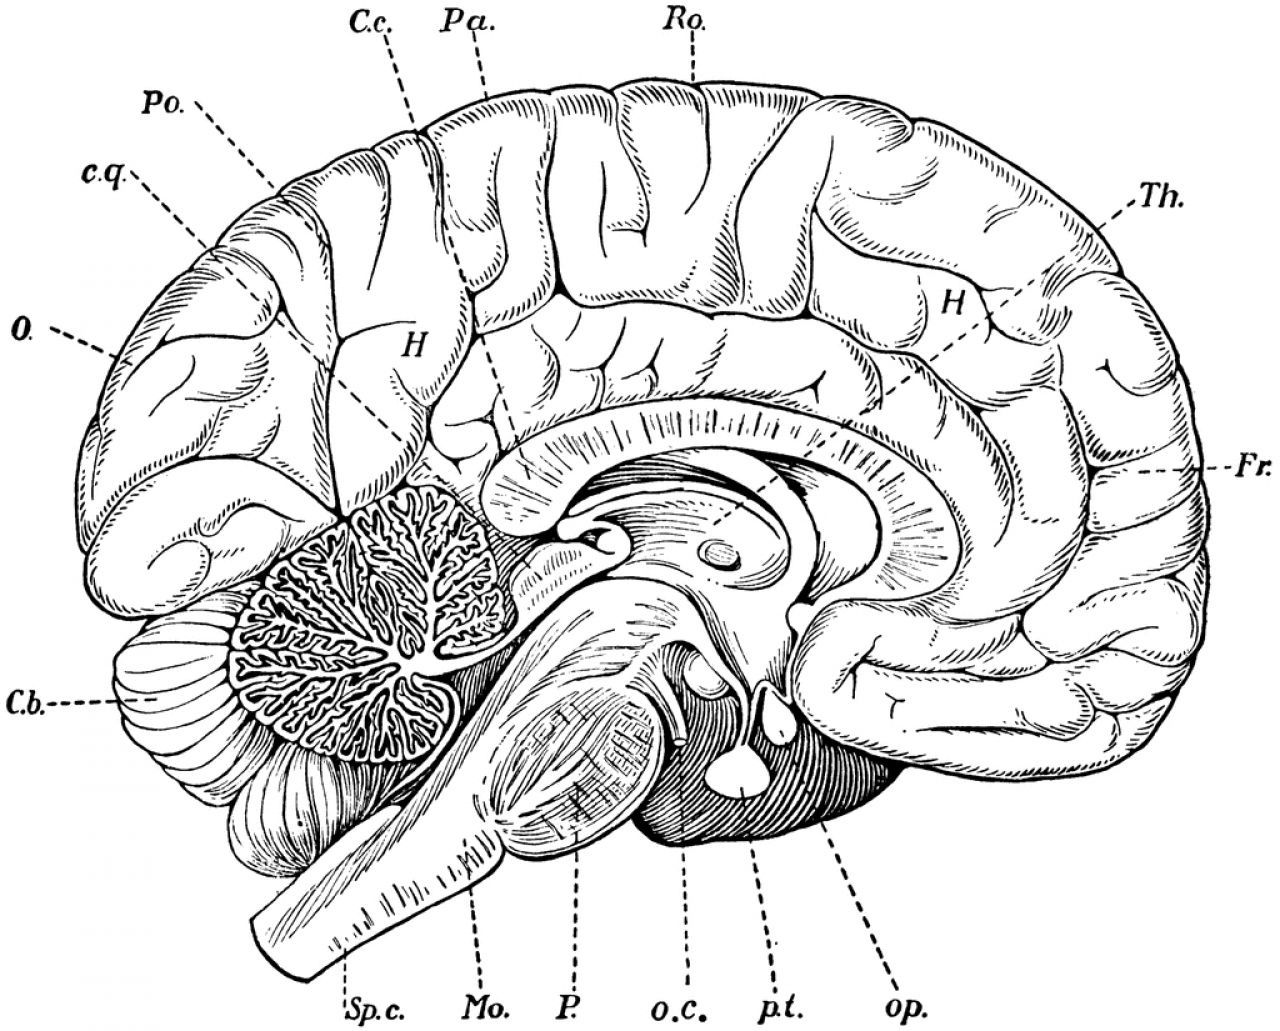 Drawn Sheep Brain Diagram Unlabeled - Schematic Wiring Diagram •